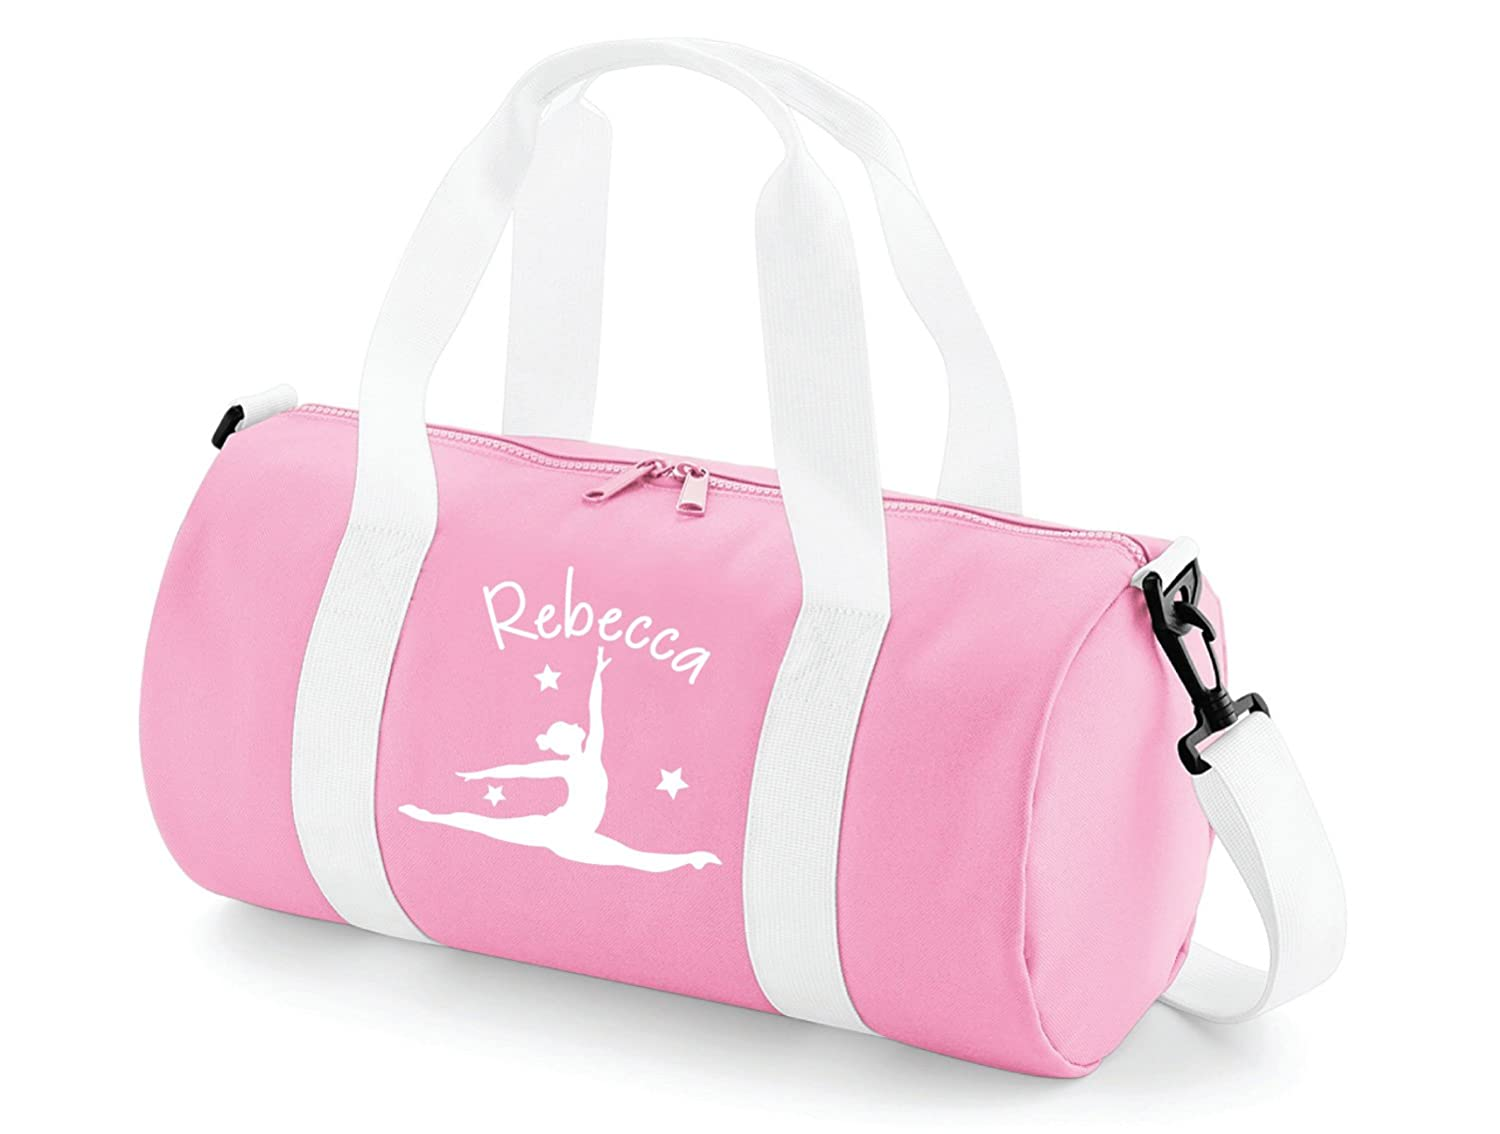 Absolutely Top Girls Personalised Gymnastics Splits Barrel Bag